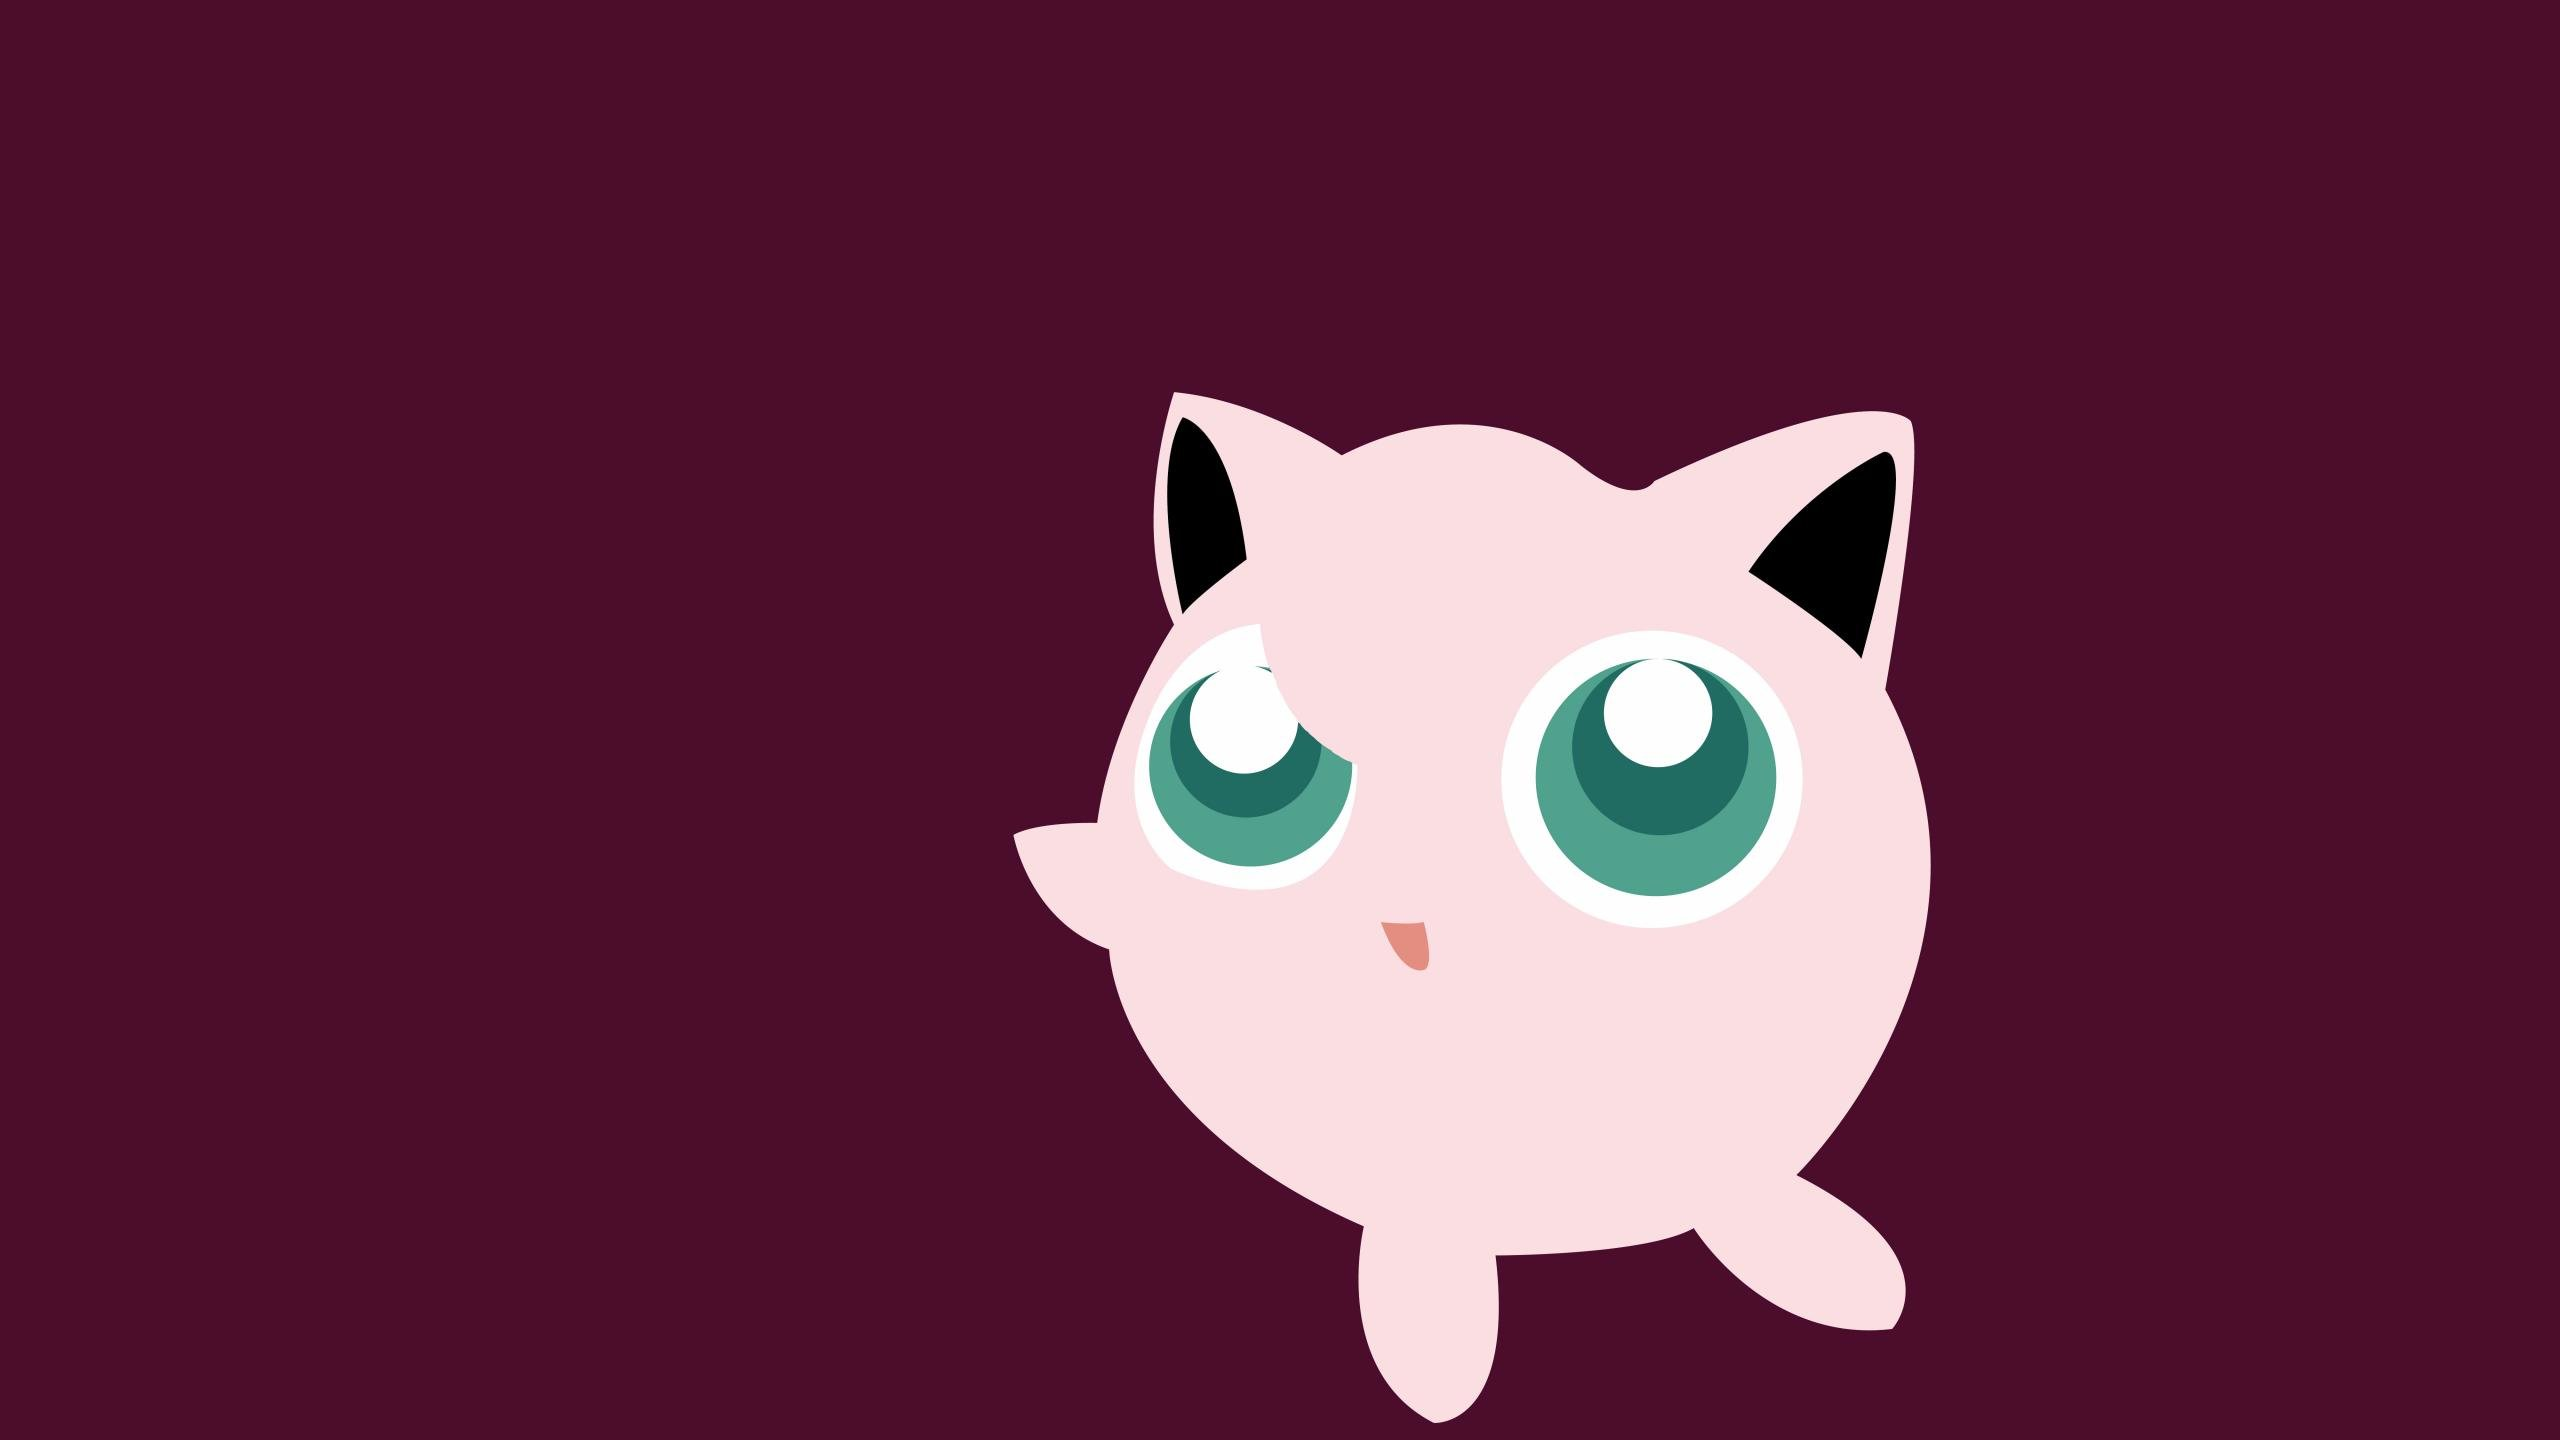 High Resolution Jigglypuff Pokemon Hd 2560x1440 Background Id